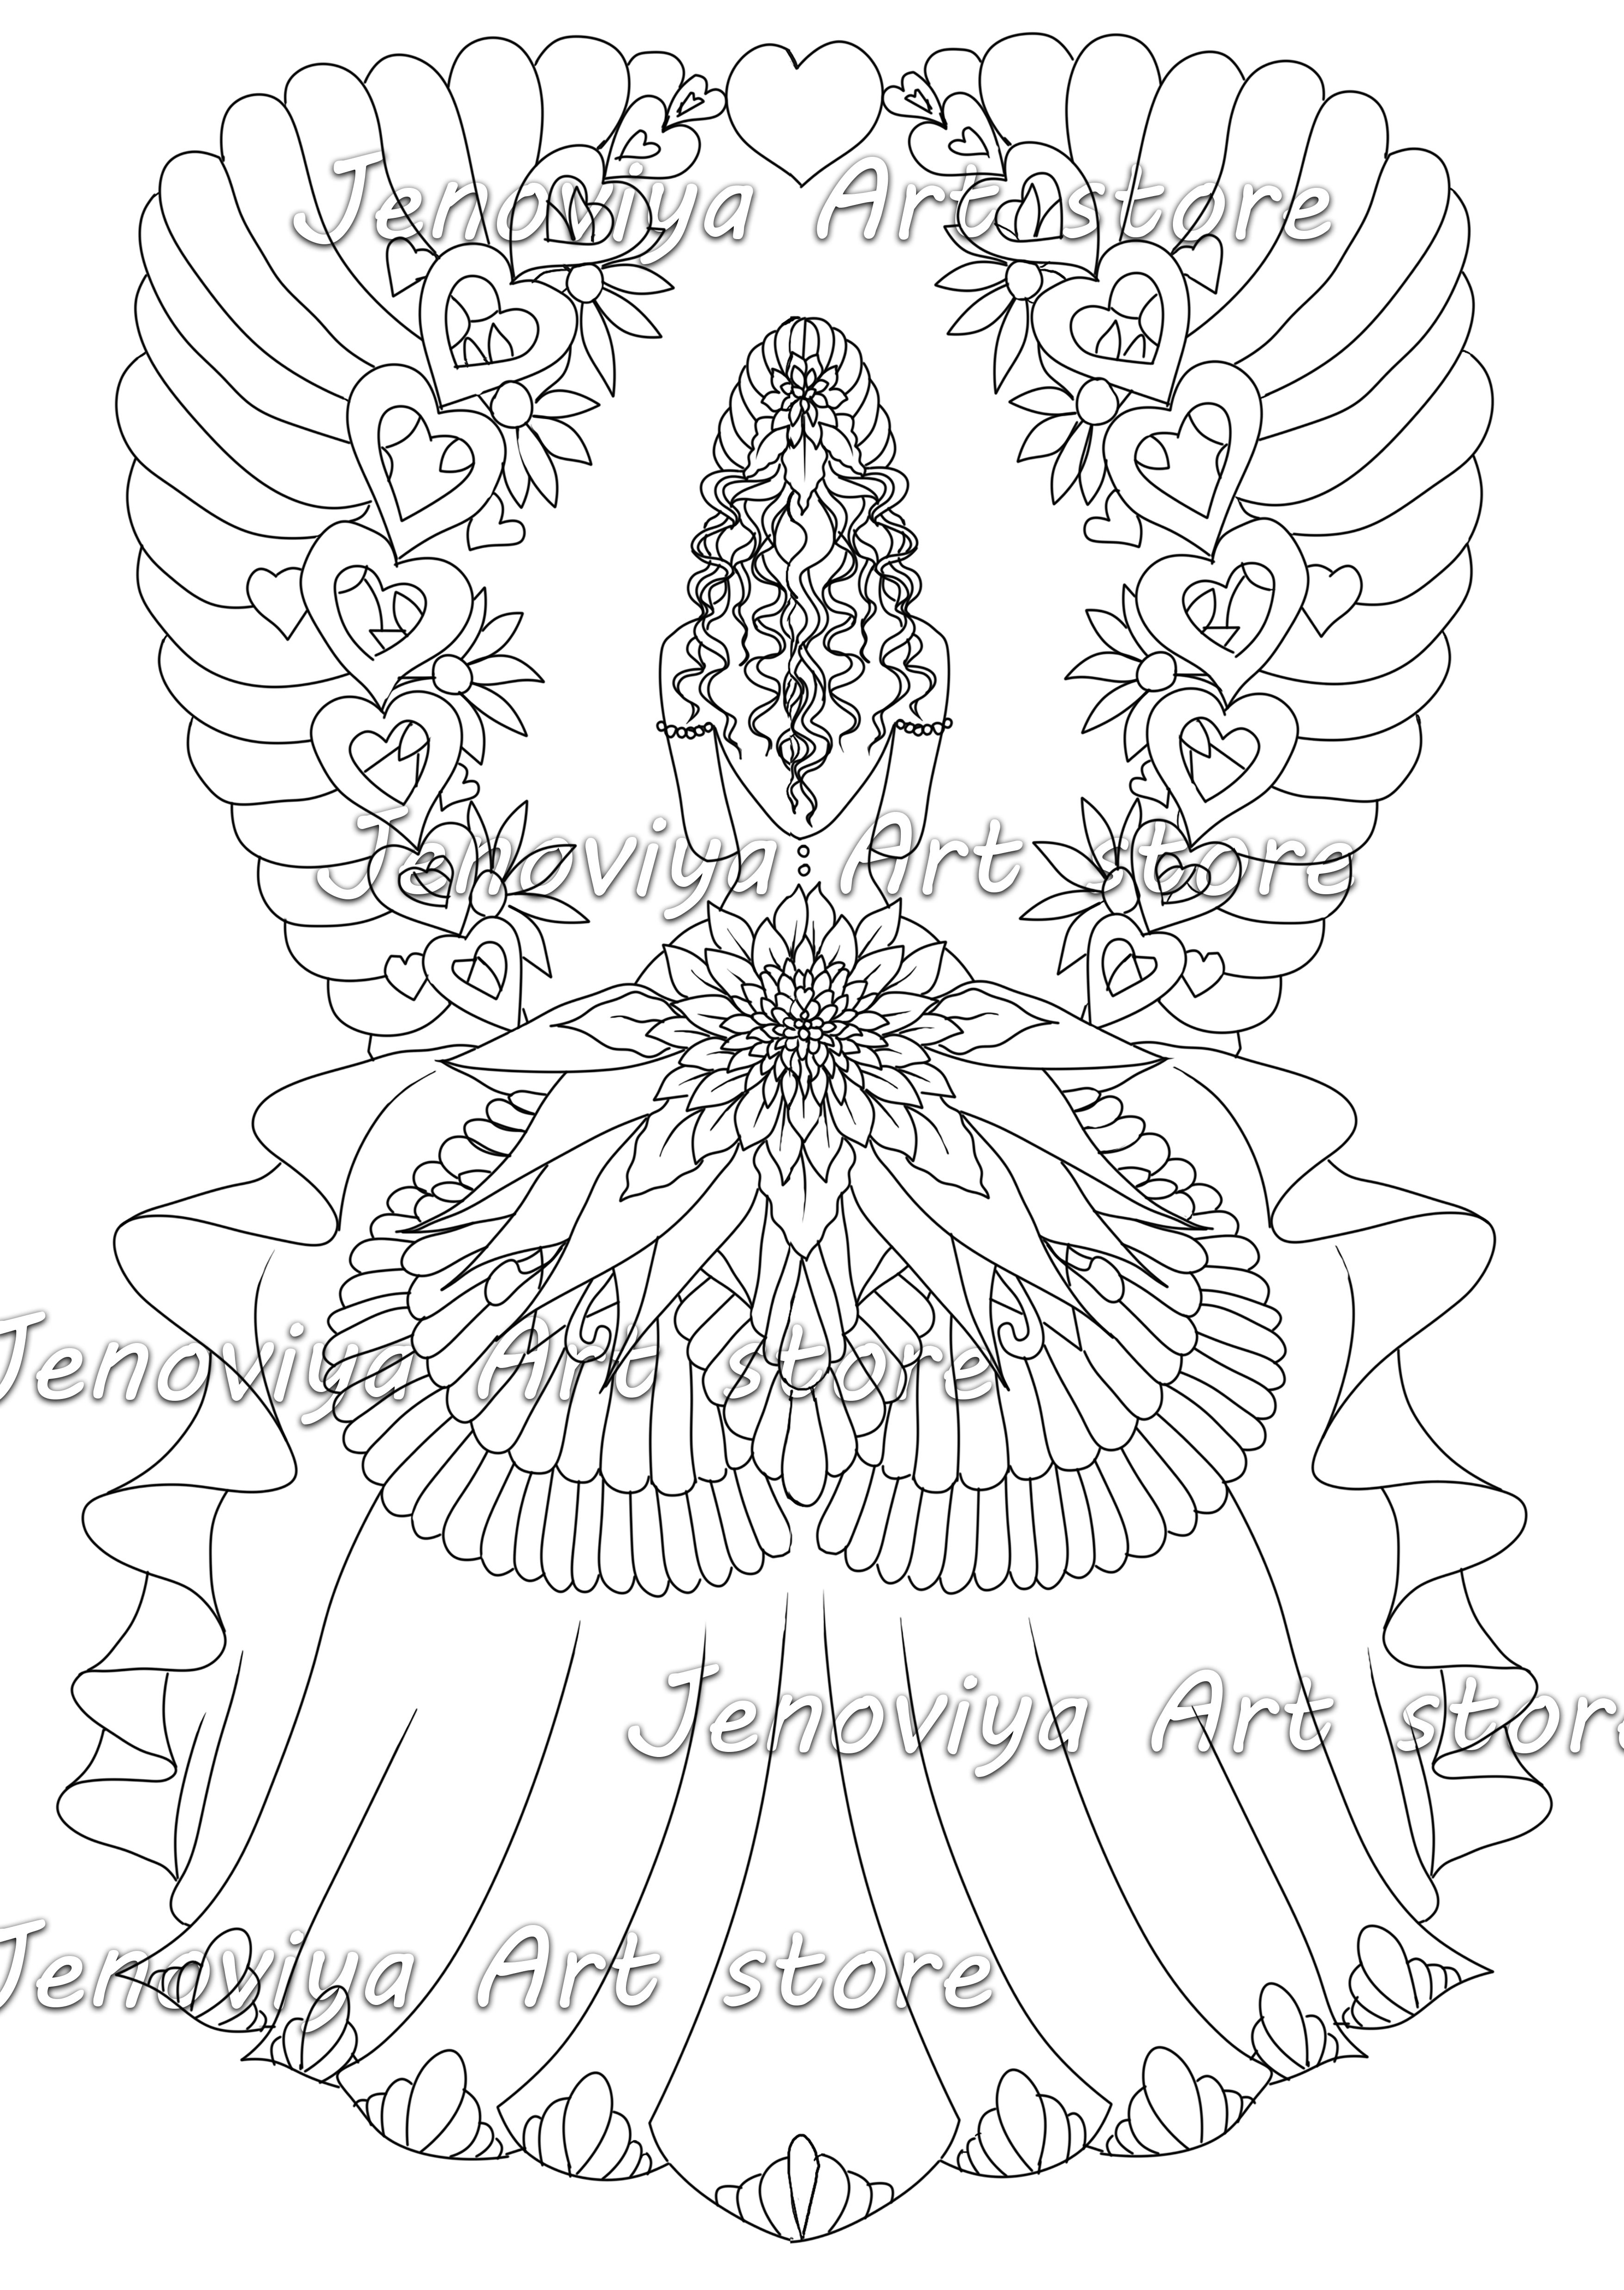 - Coloring Sheet Colouring Page Printable Coloring Book Adult